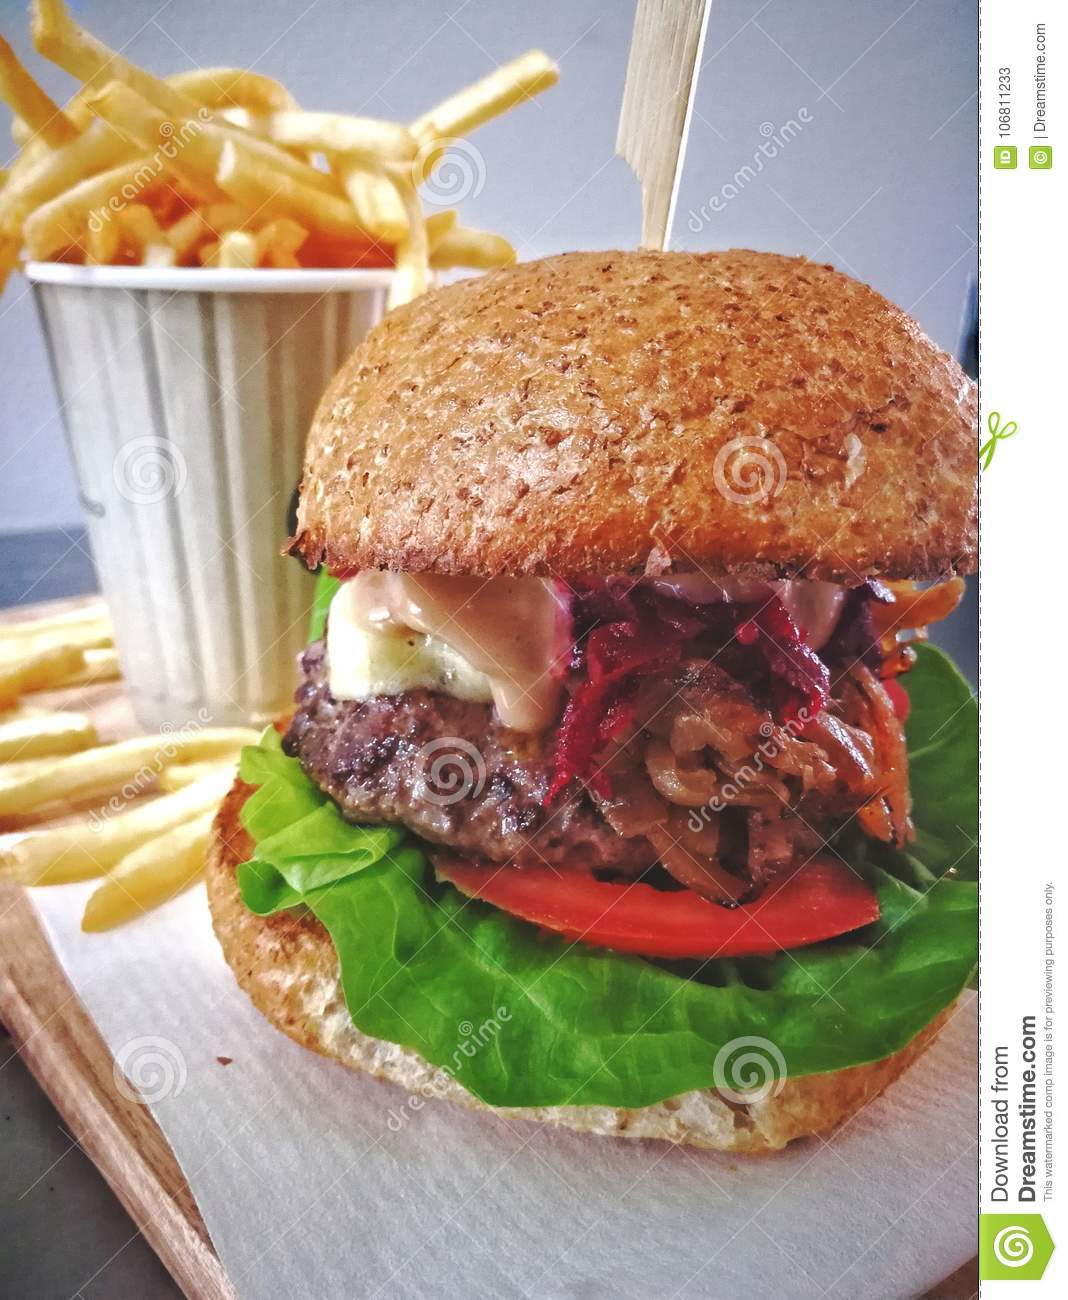 Beef burger with chips in background on wood tray